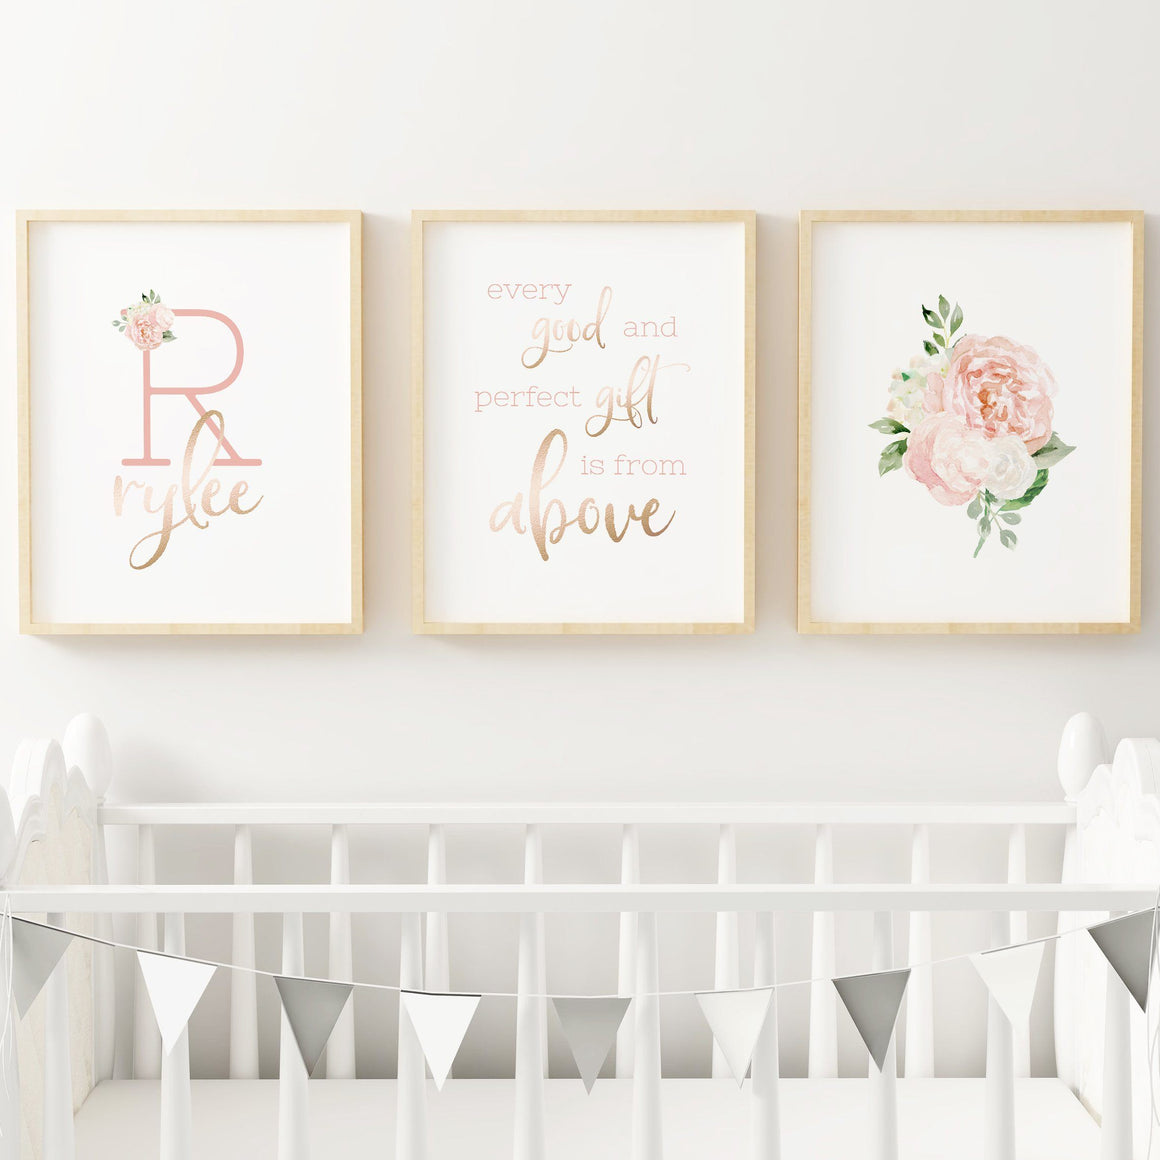 Dark Blush #6 // Set of 3 Prints | Nursery Prints | The Graceful Goose